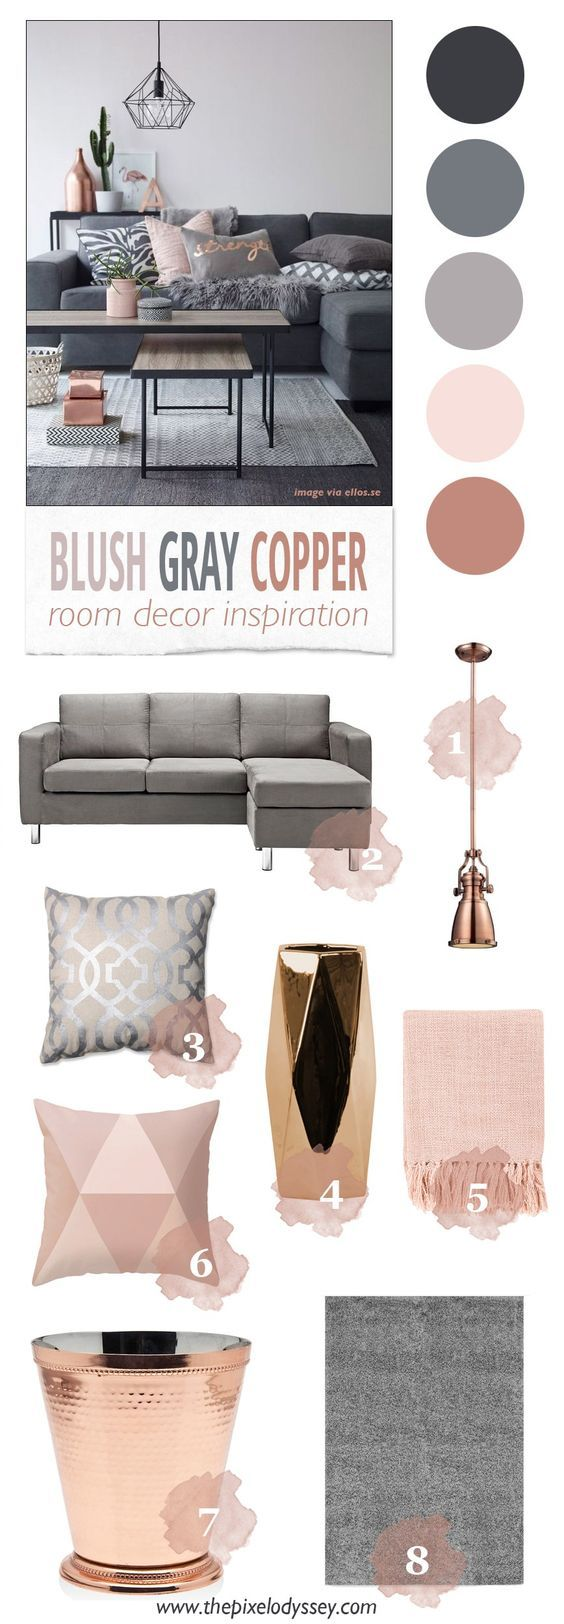 Blush Gray Copper Room Decor Inspiration - The Pixel Odyssey // visit our sister sites http://www.openimagemedia.com for more color inspiration and http://www.rfmhstore.com for trendy accessories!